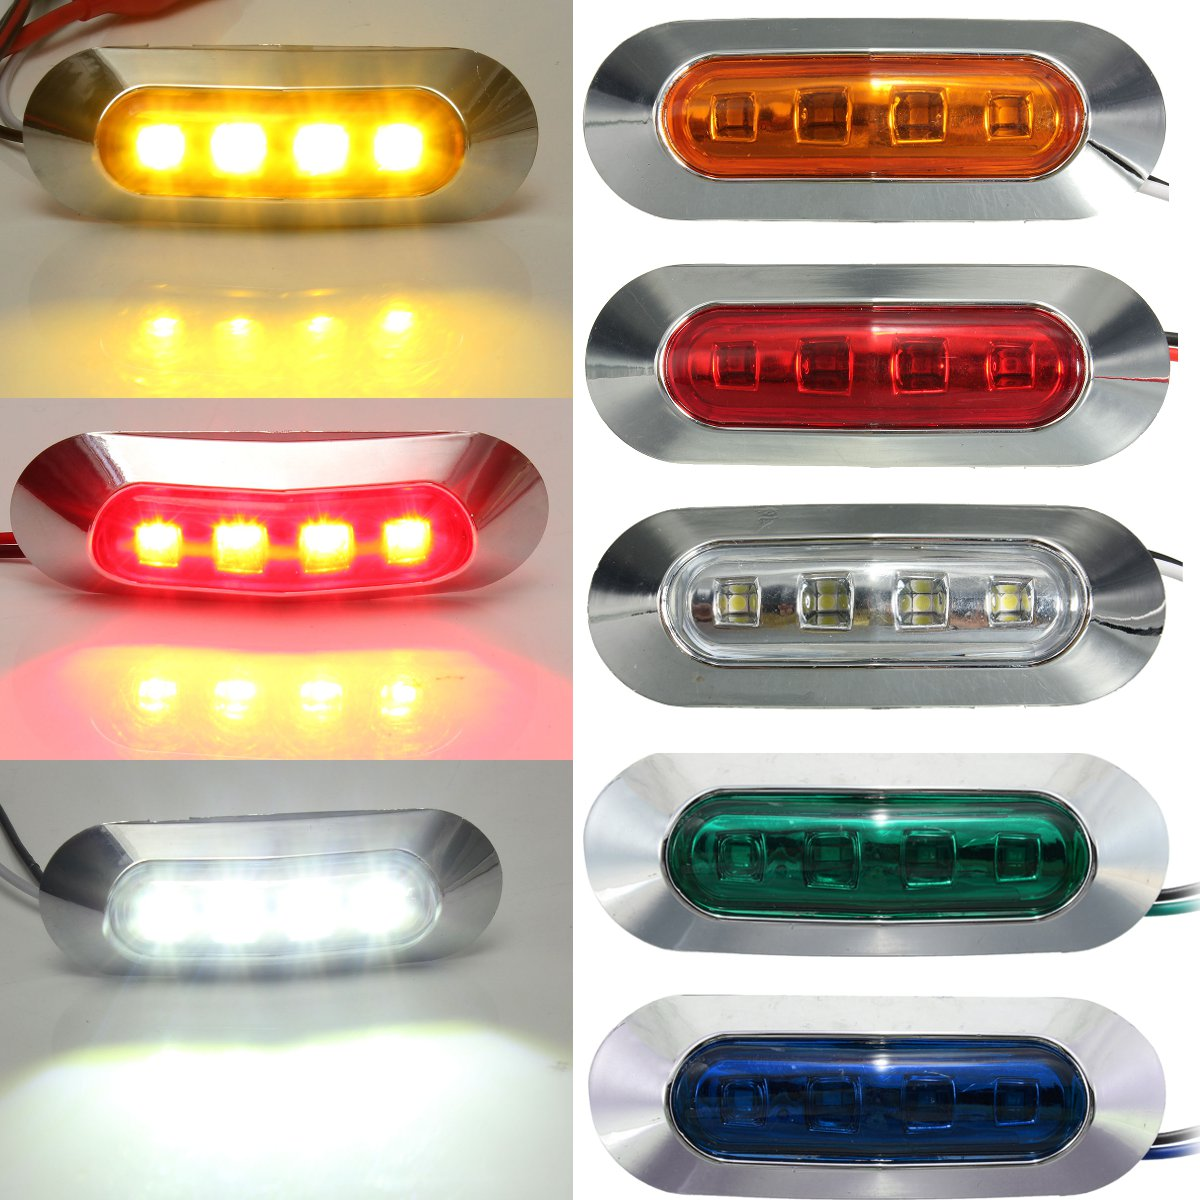 2x Rover 800 4-LED Side Repeater Indicator Turn Signal Light Lamp Bulbs